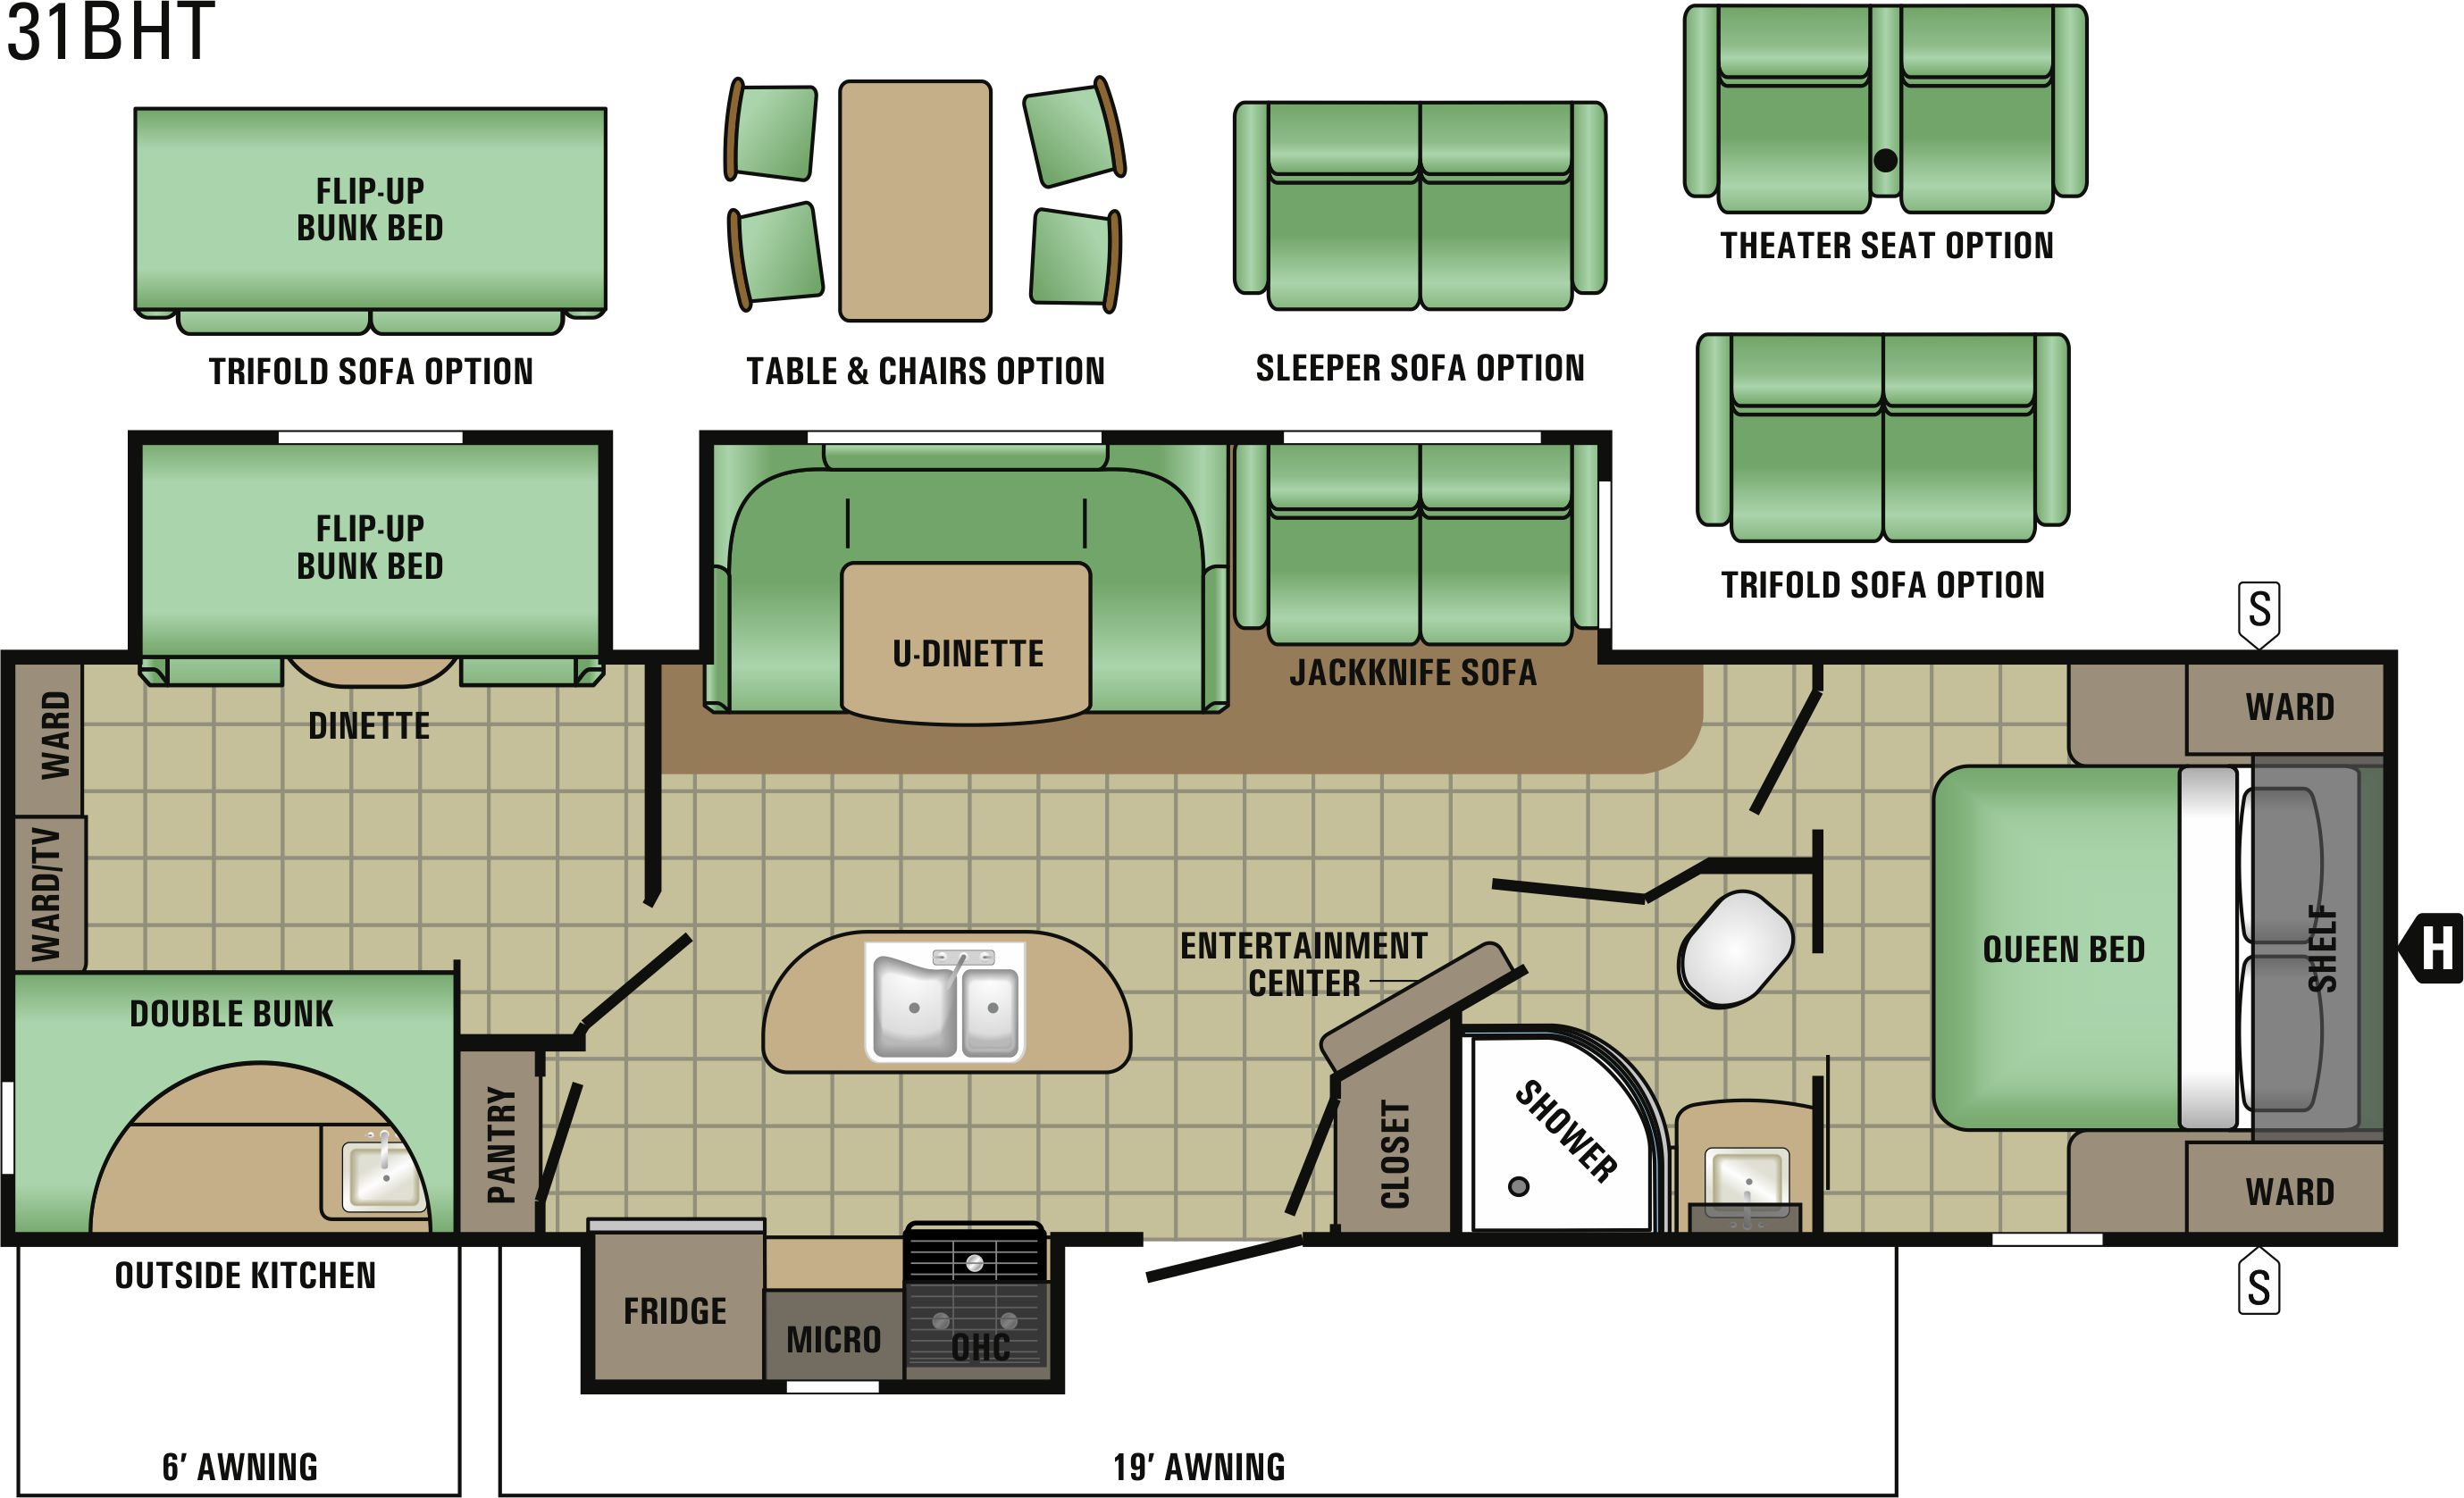 31BHT Floorplan